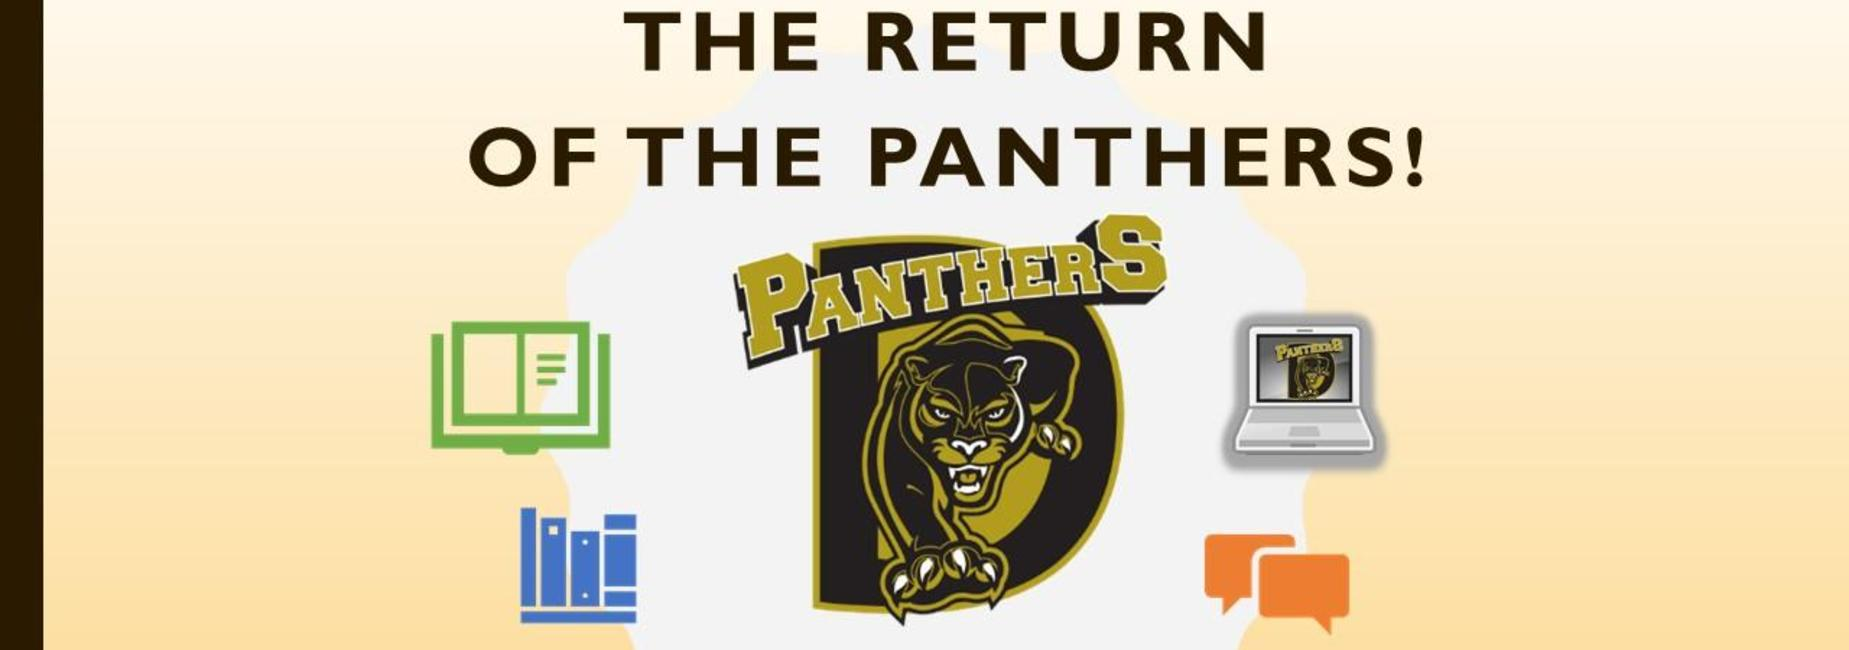 Return of the Panthers